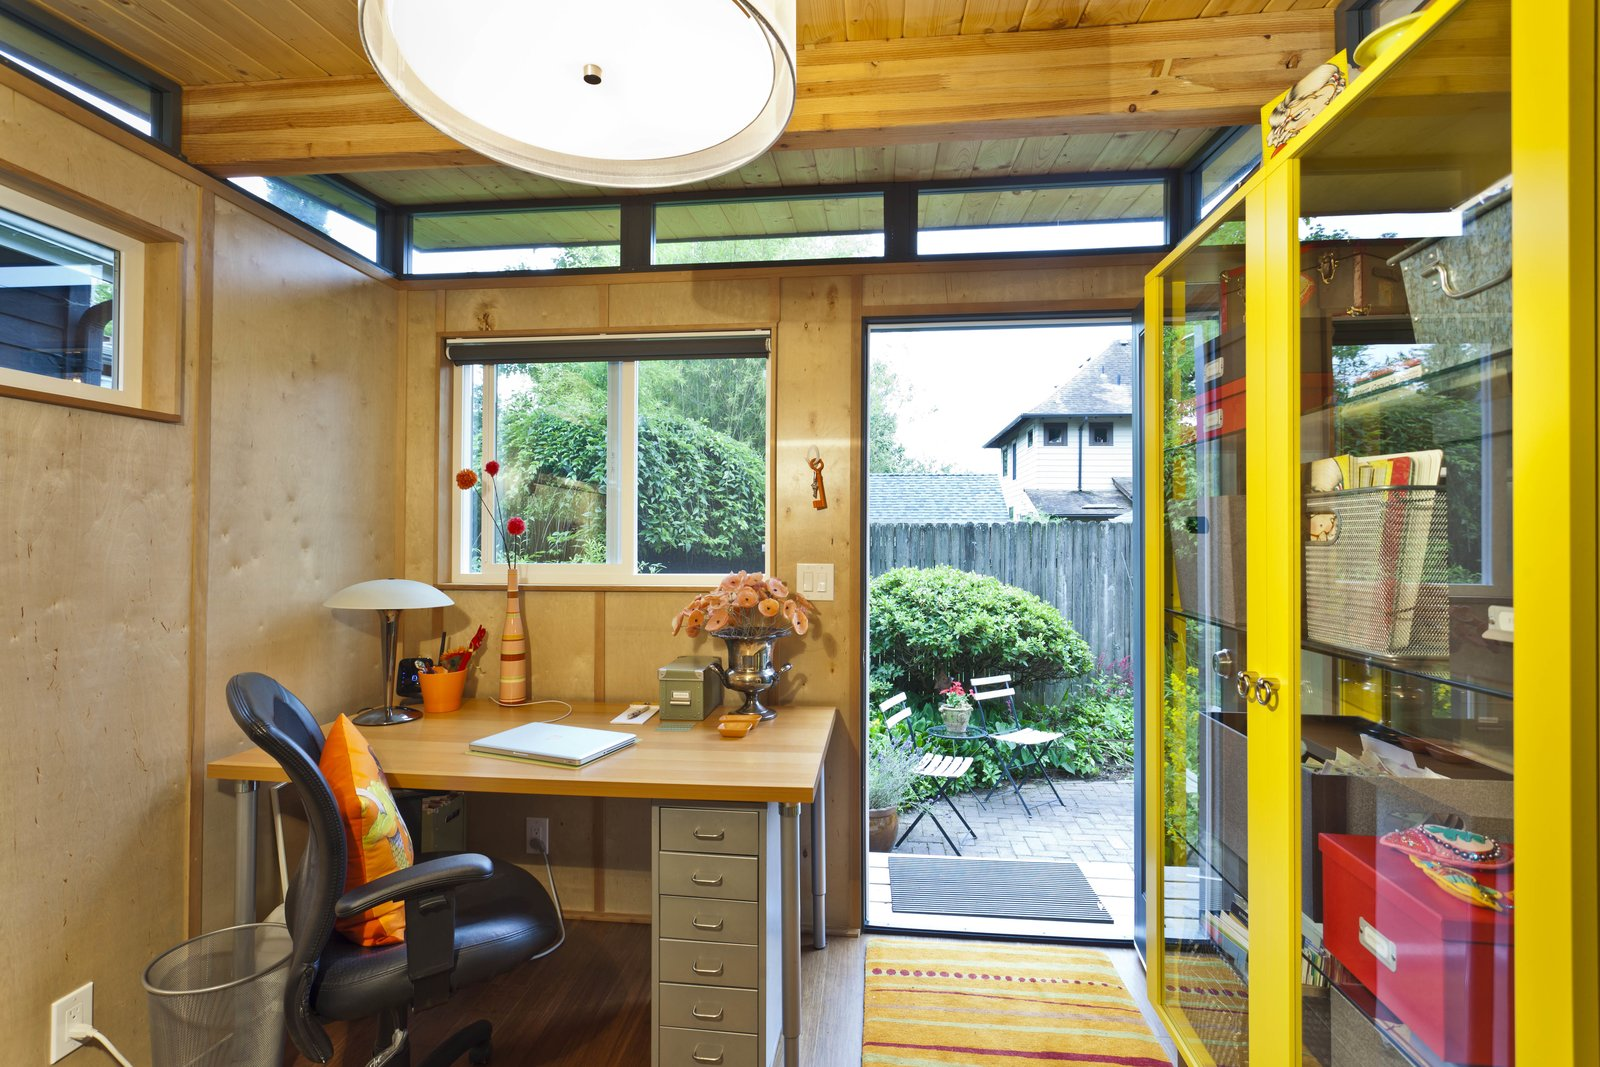 27 Modern She Shed Designs To Inspire Your Backyard Escape